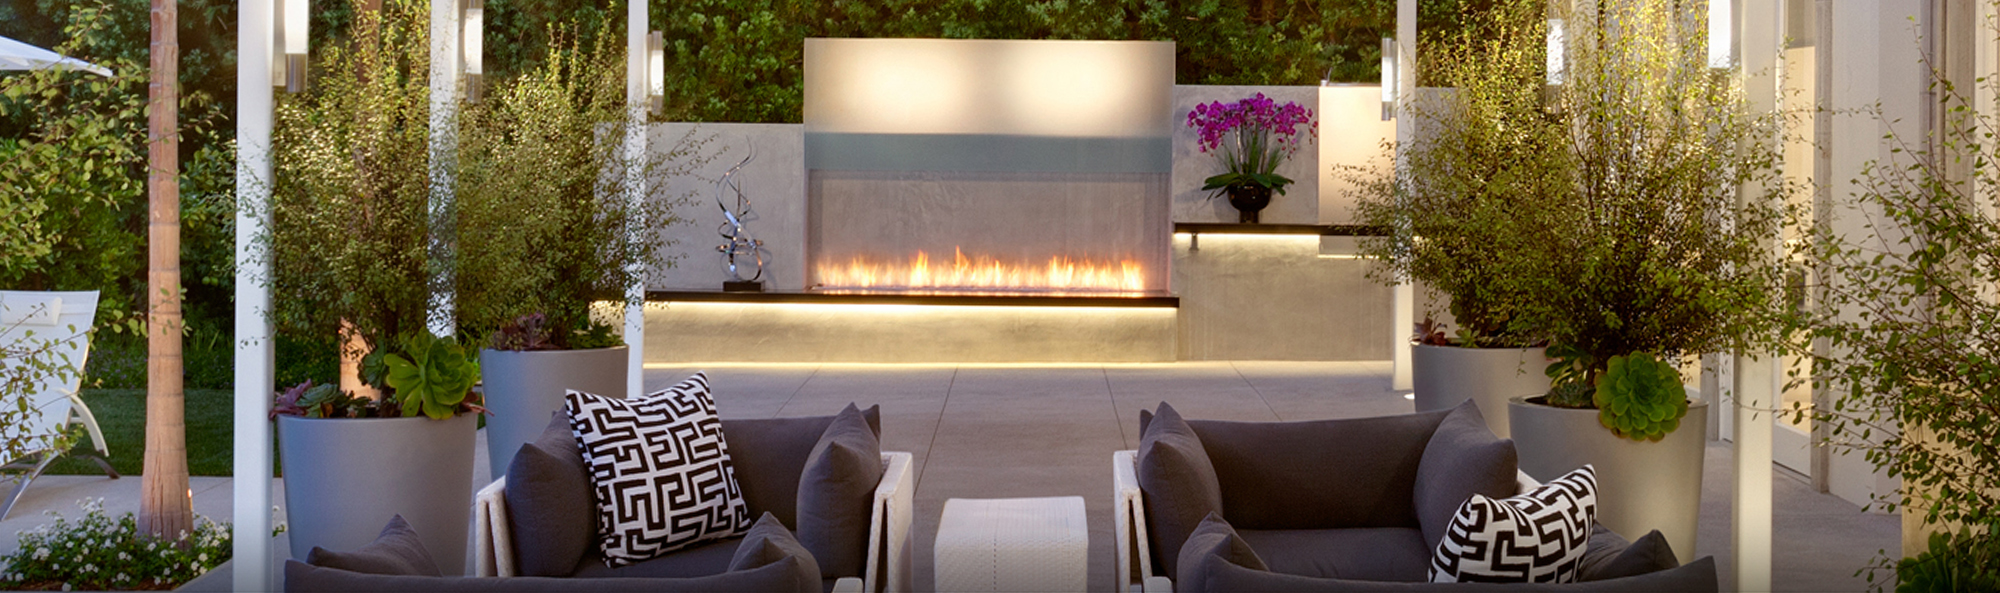 frequently asked questions spark modern fires